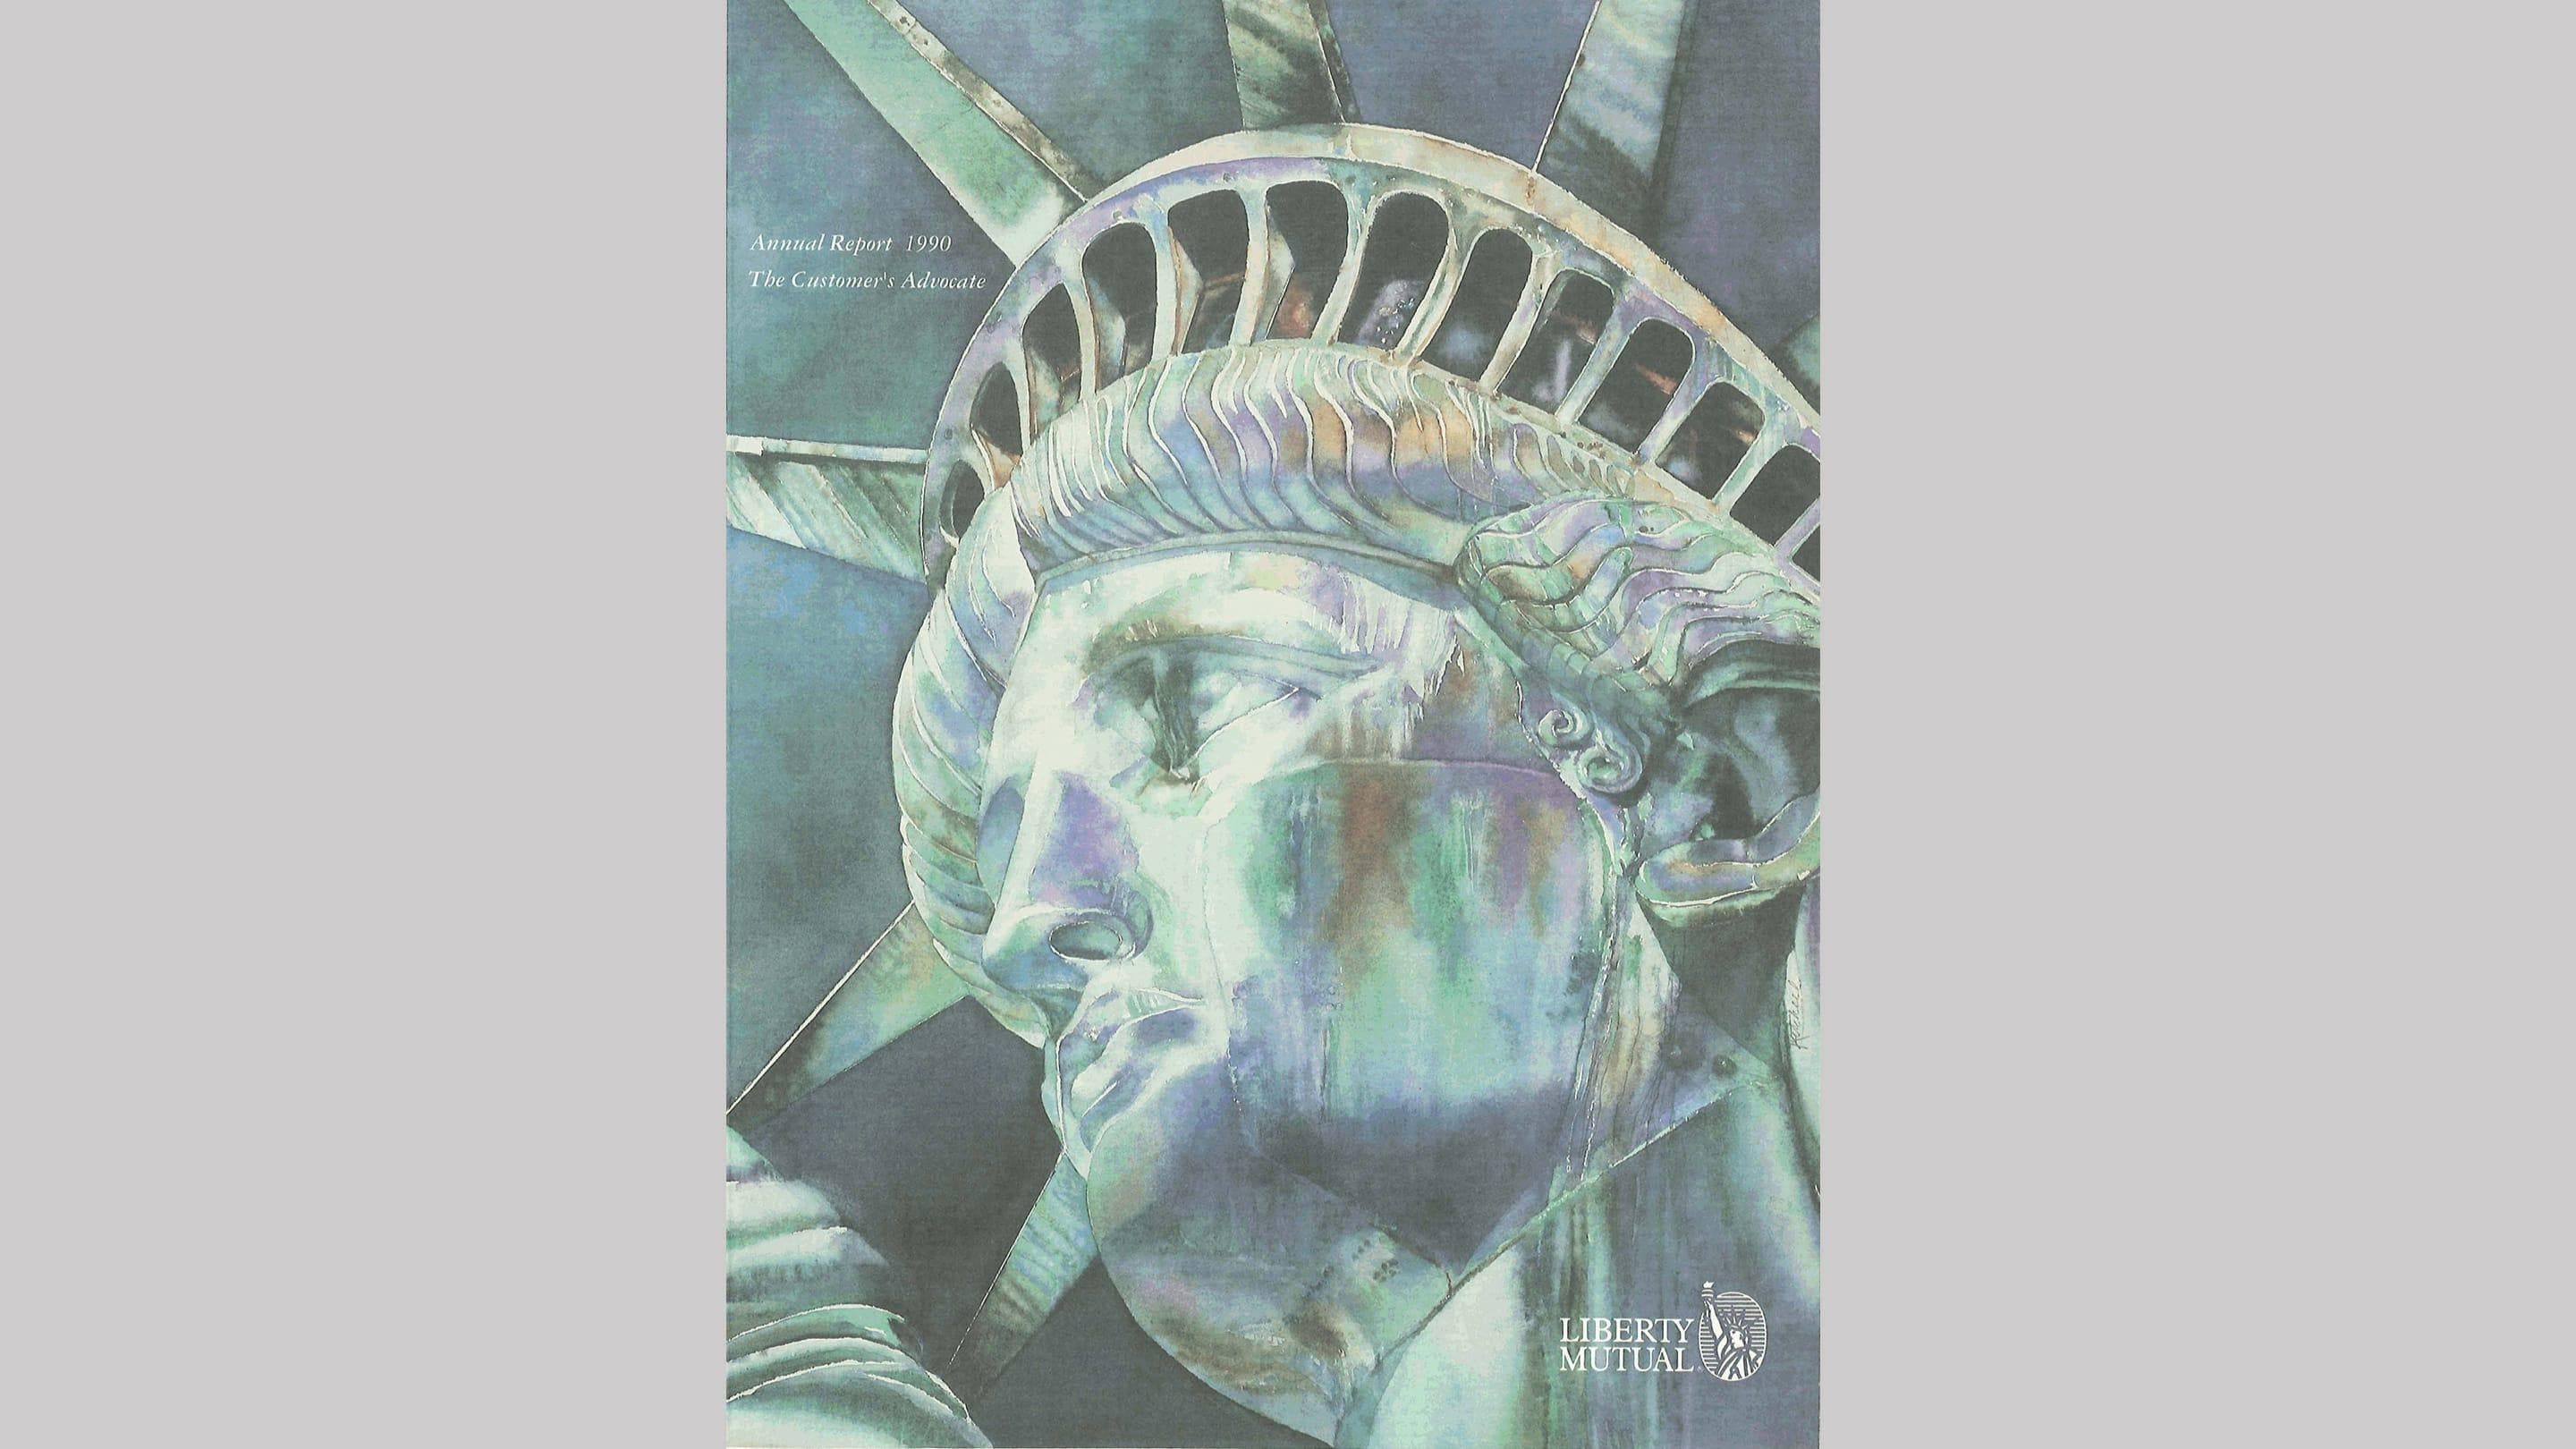 (slide 10 of 12) A 1990 annual report cover by Liberty Mutual Insurance featuring a close up of the statue of liberty's face .